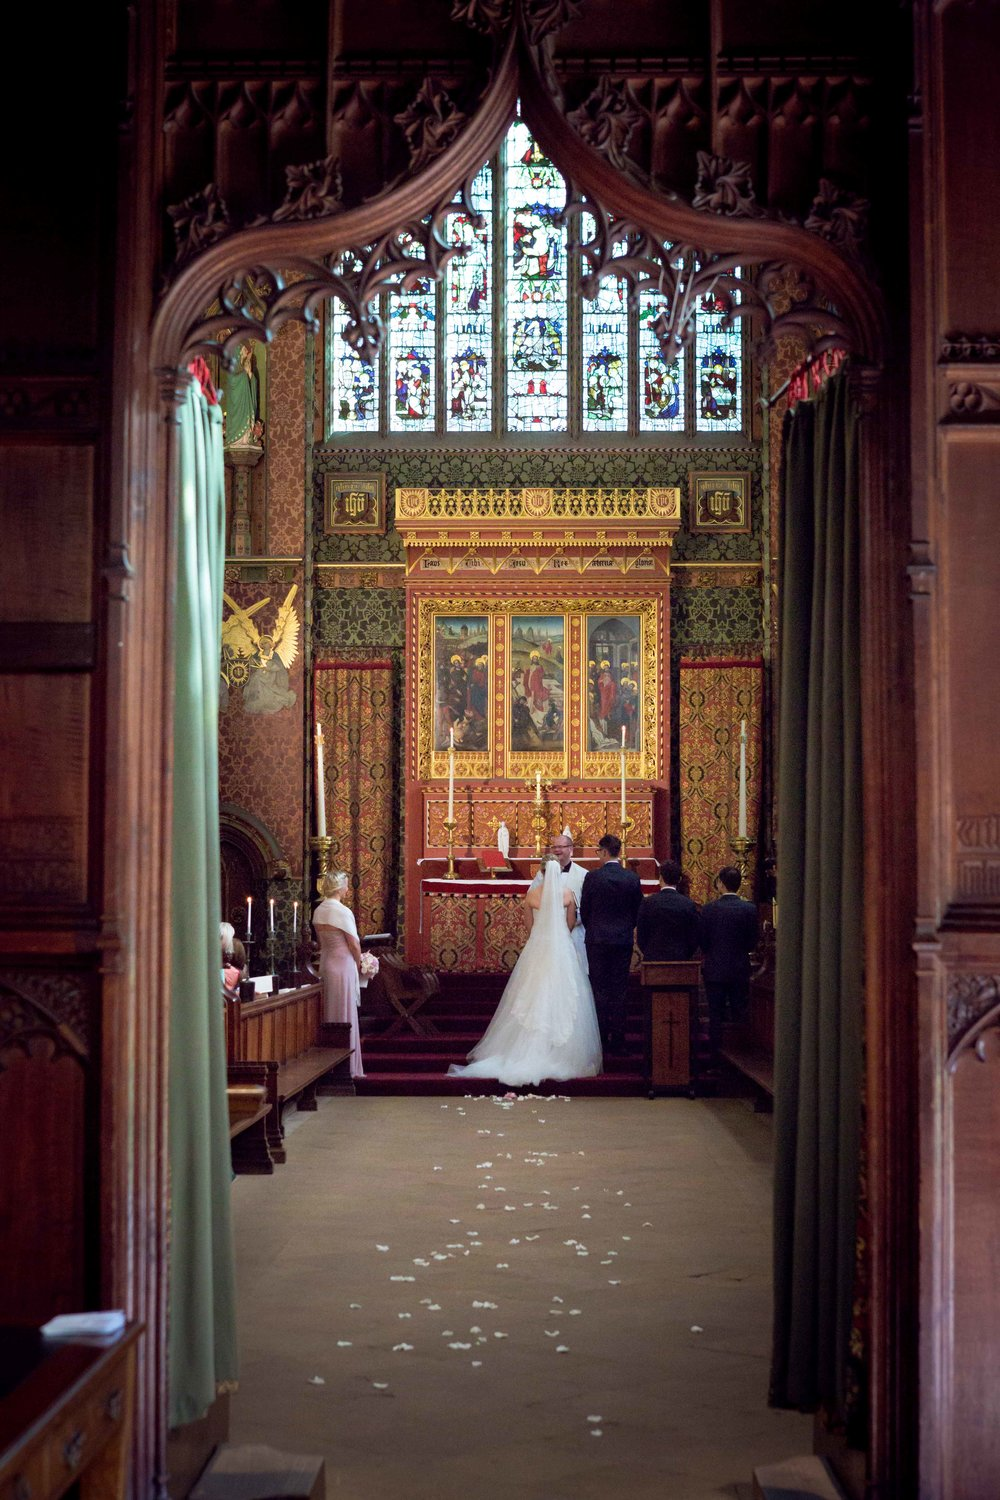 Adrian_Nicole_Charnwood_Weddings_Queens_College_Cambridge-1017.jpg